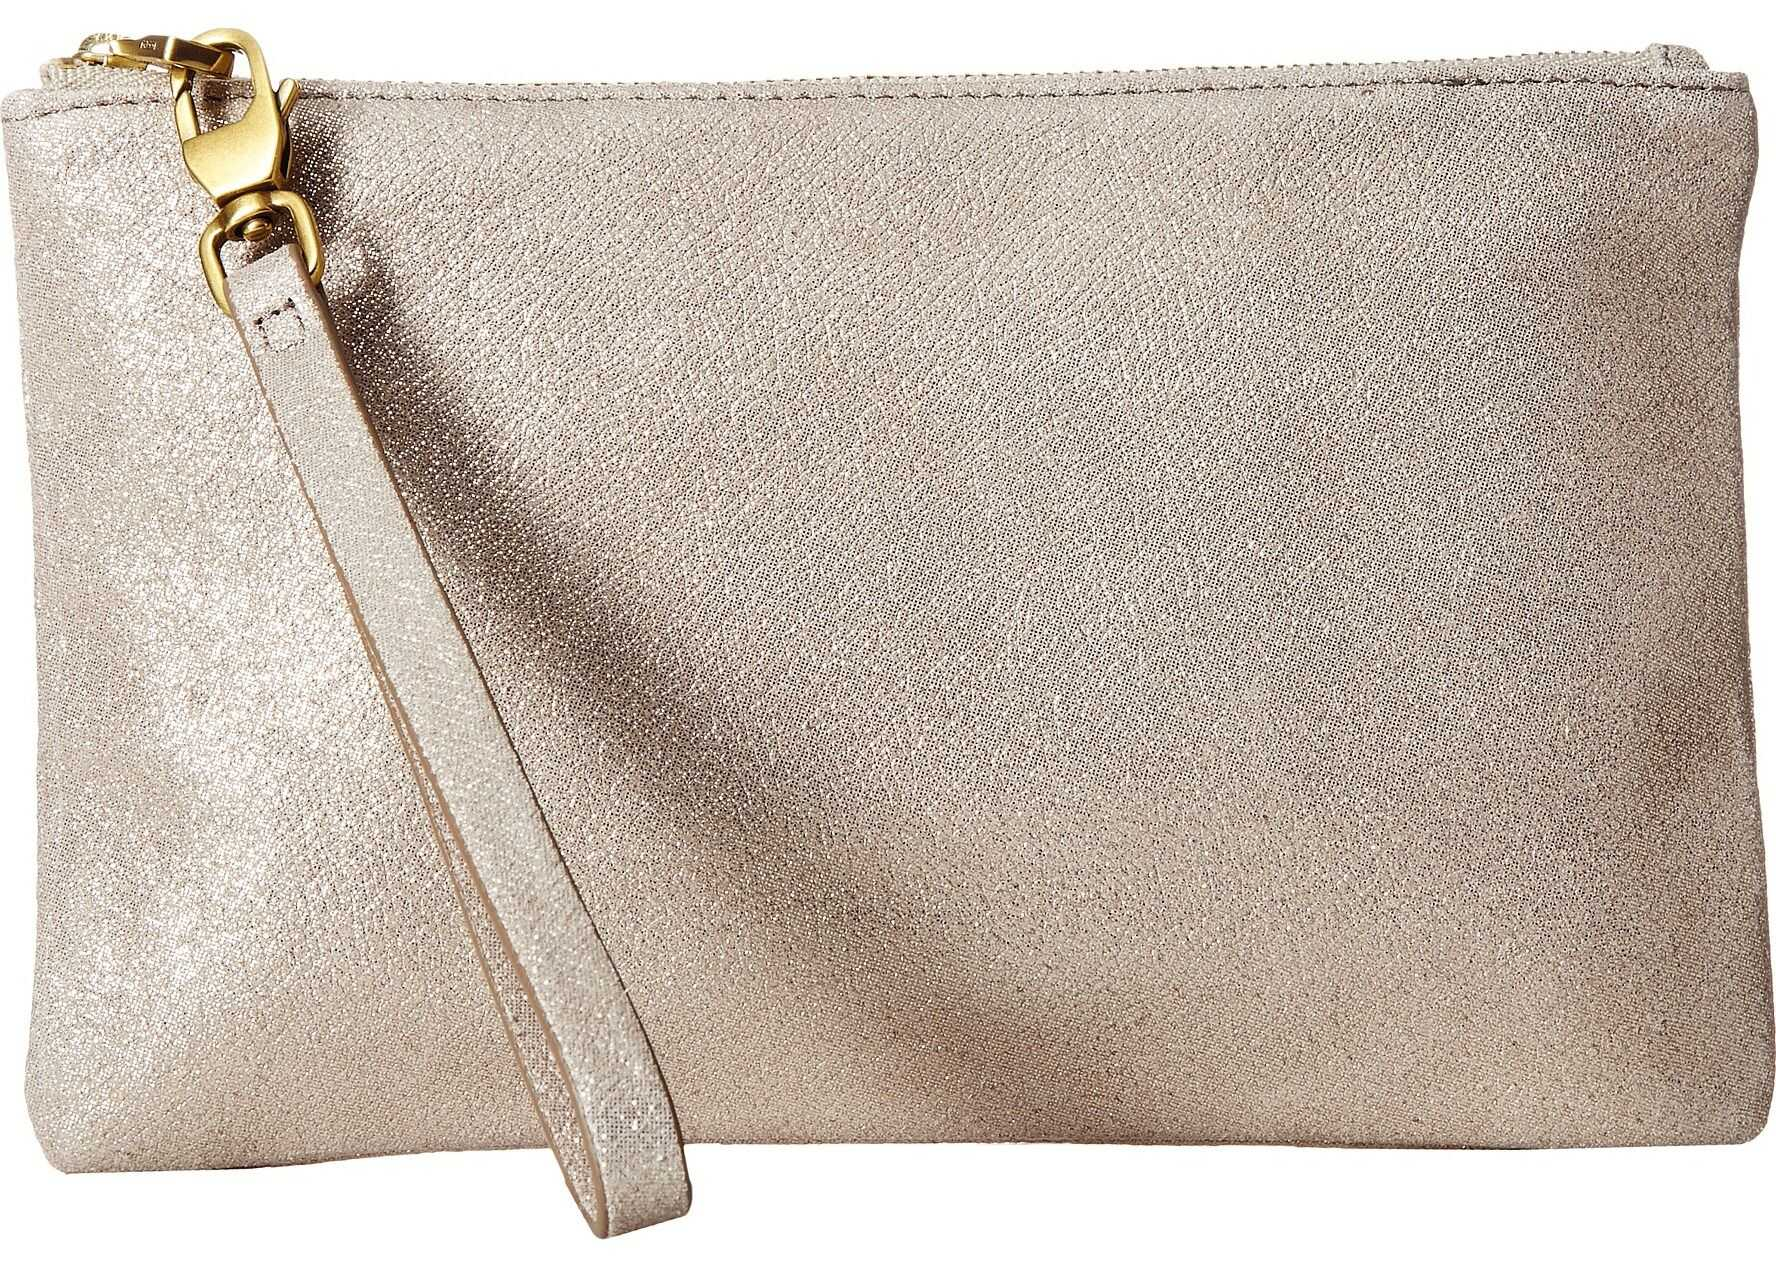 Fossil Wristlet Champagne